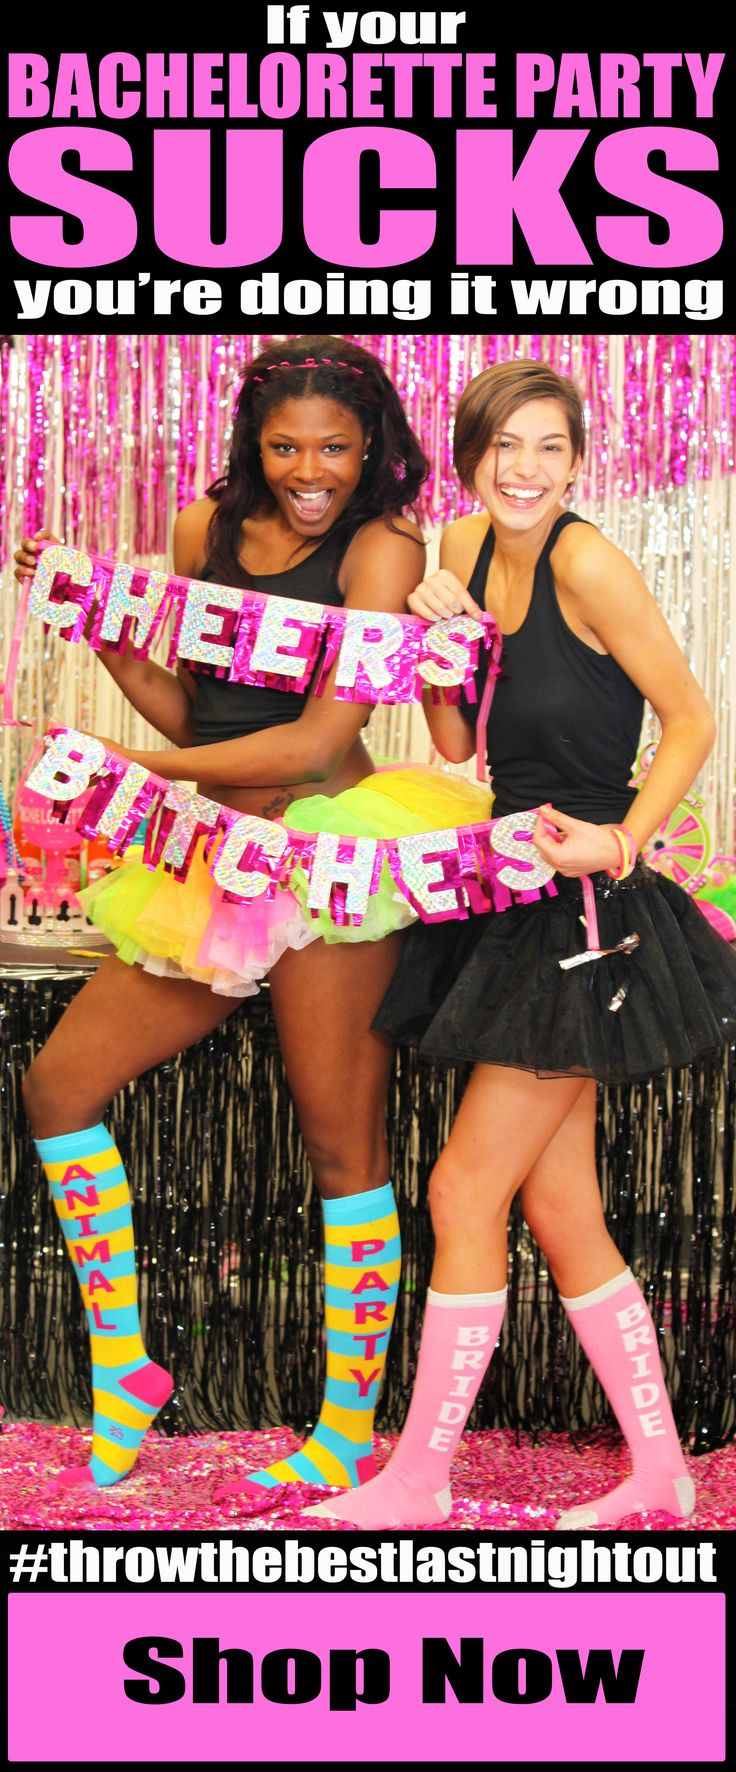 We agree, some Bachelorette traditions need to be revamped, but if a night of craziness out with your best friends sucks, then we are sorry to say - you are doing something wrong :(  But don't despair - we are the Bachelorette Party Supplies experts, and we are different...no really...and we think that Bachelorette Party should be one of the the BEST NIGHTS OF YOUR LIFE and we are here to help make that happen!